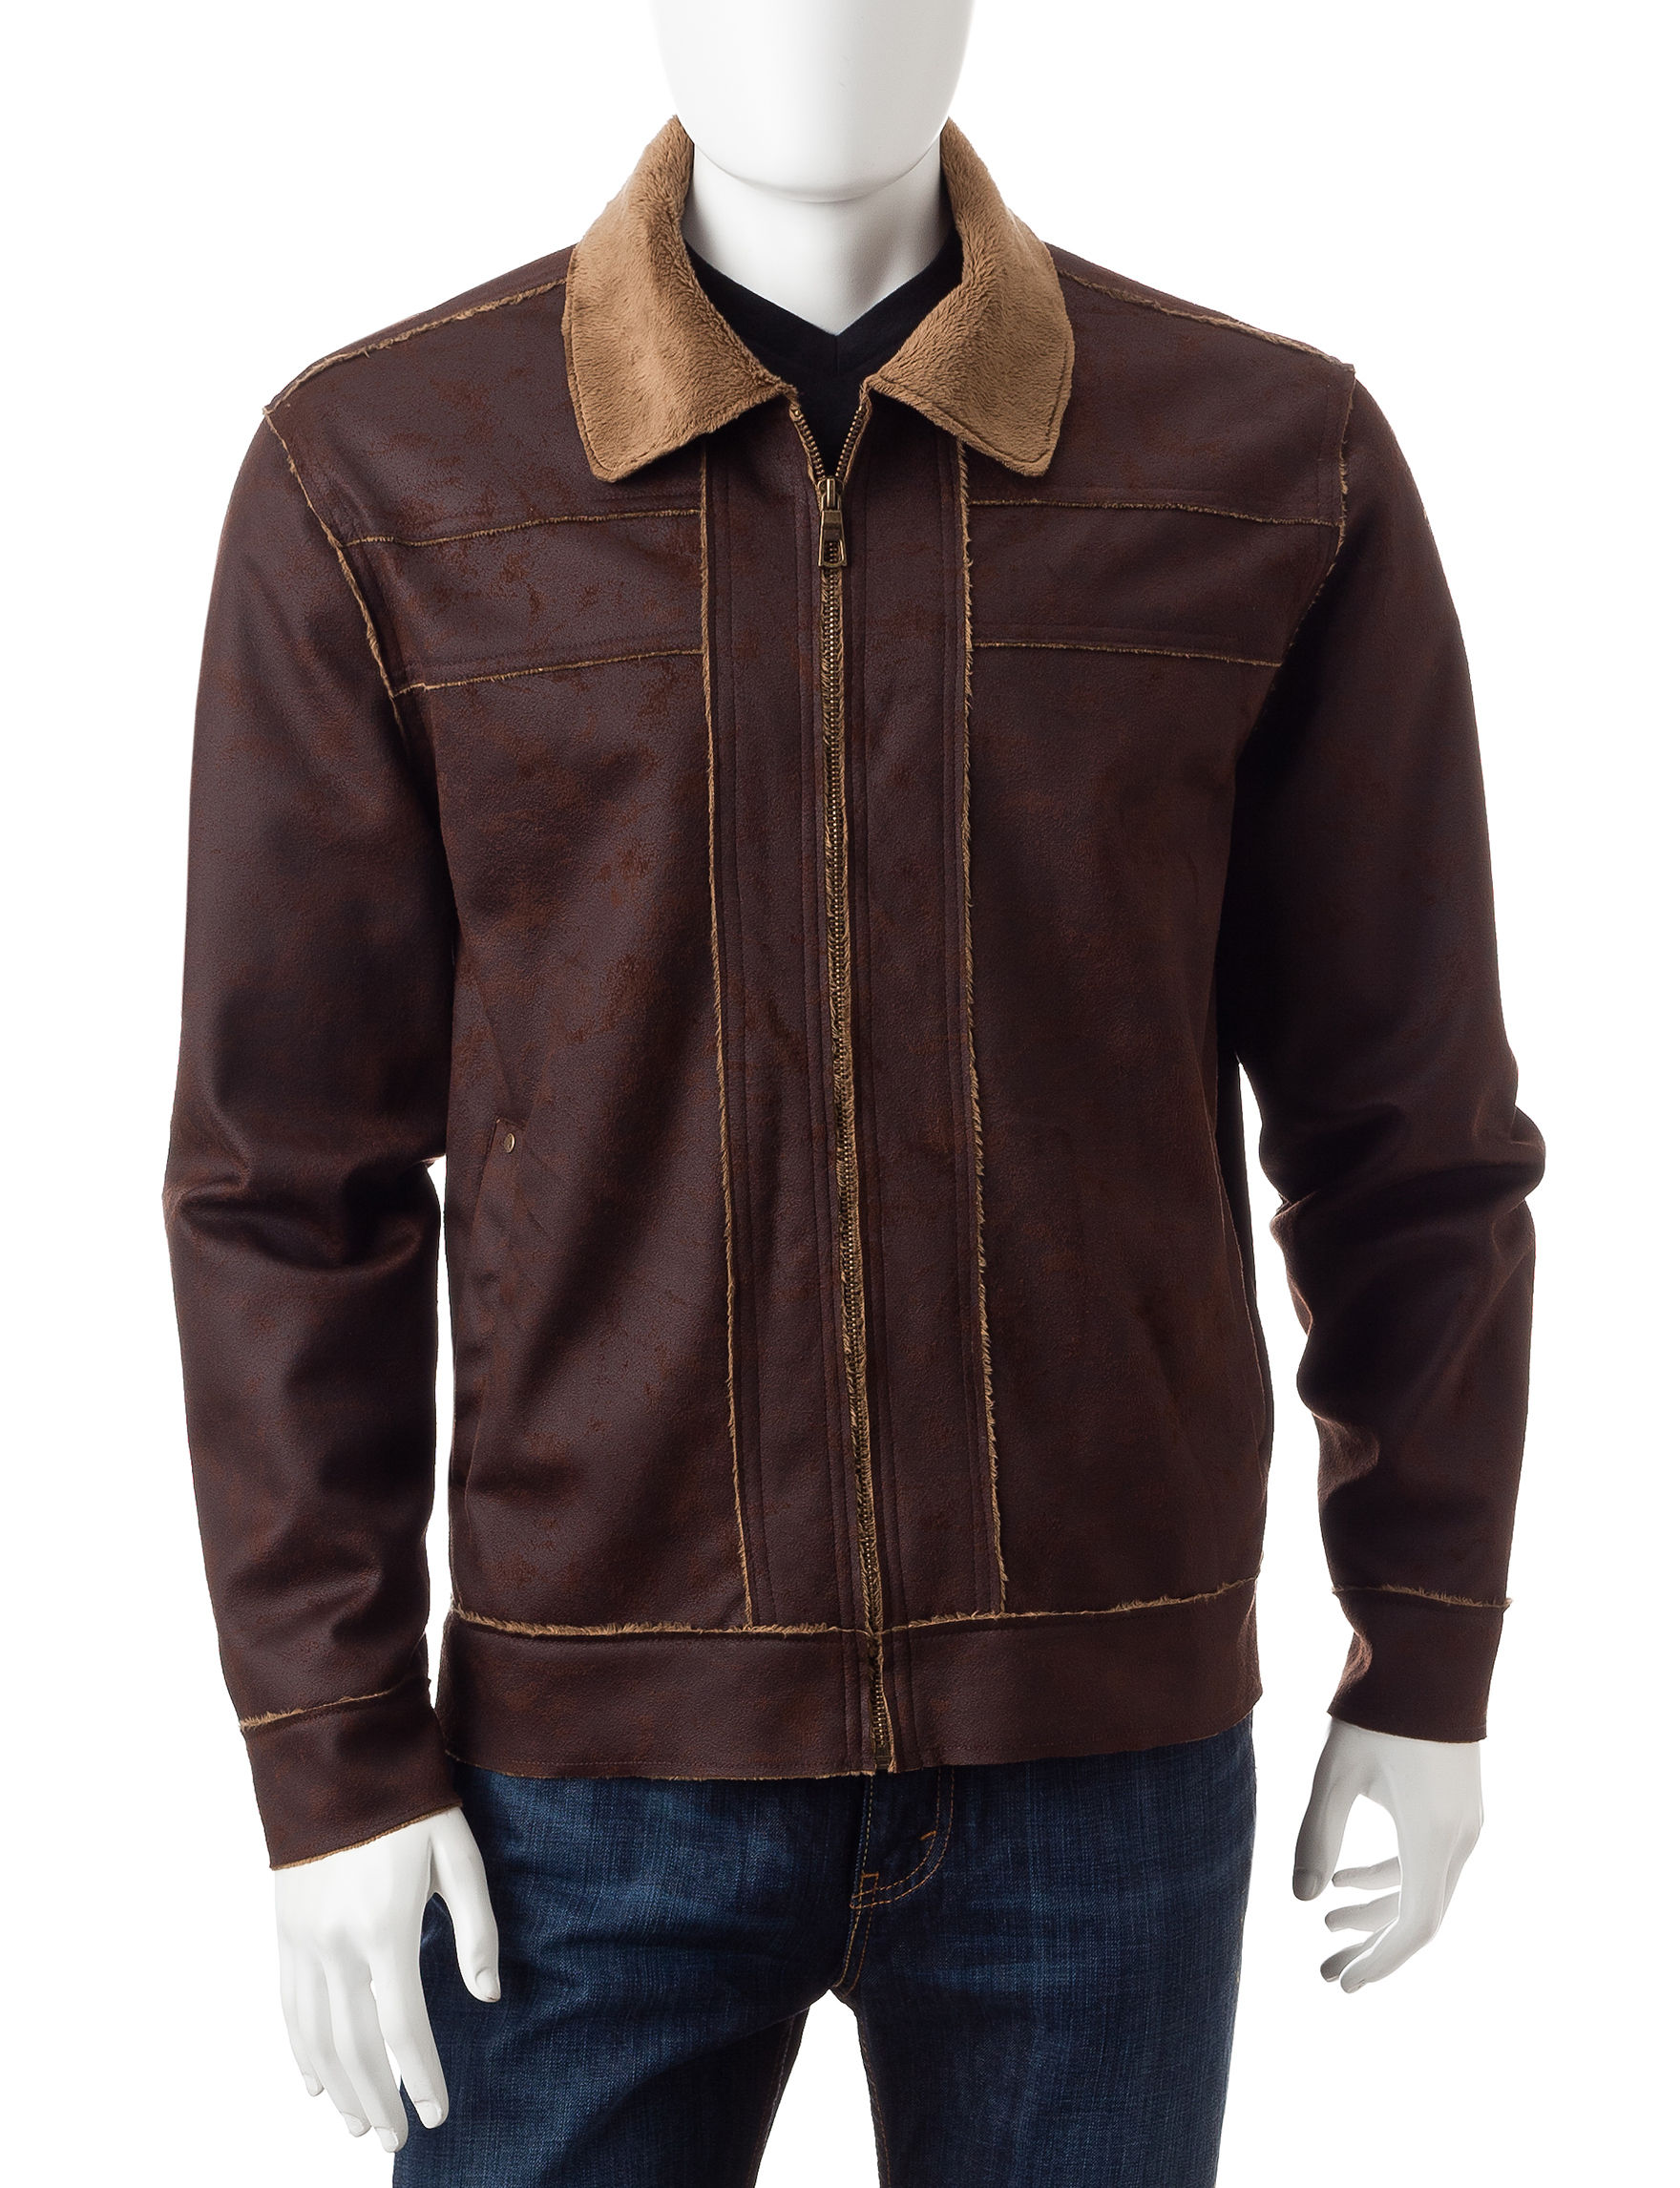 Whispering Smith Brown Lightweight Jackets & Blazers